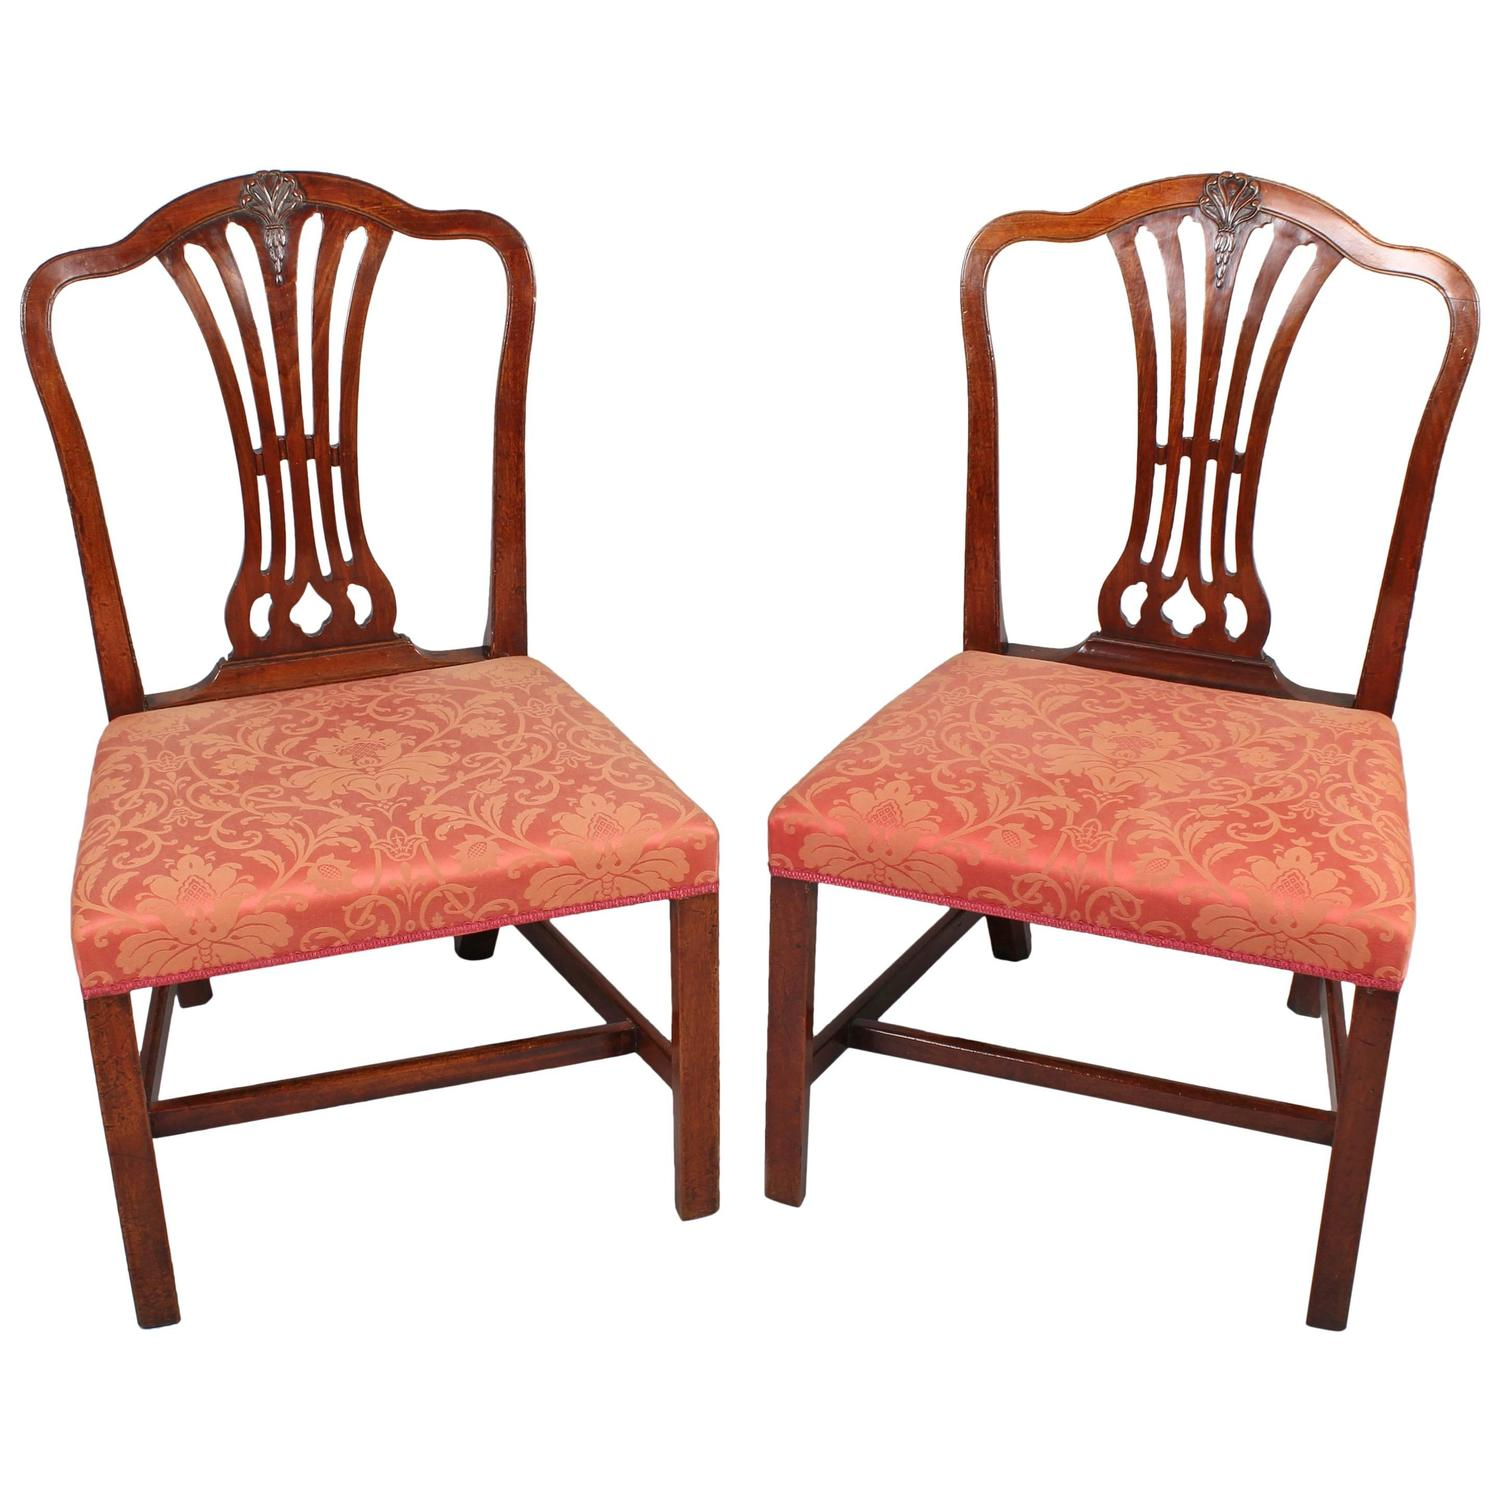 Hepplewhite Chair Pair Of George Iii Period Mahogany Side Chairs In The